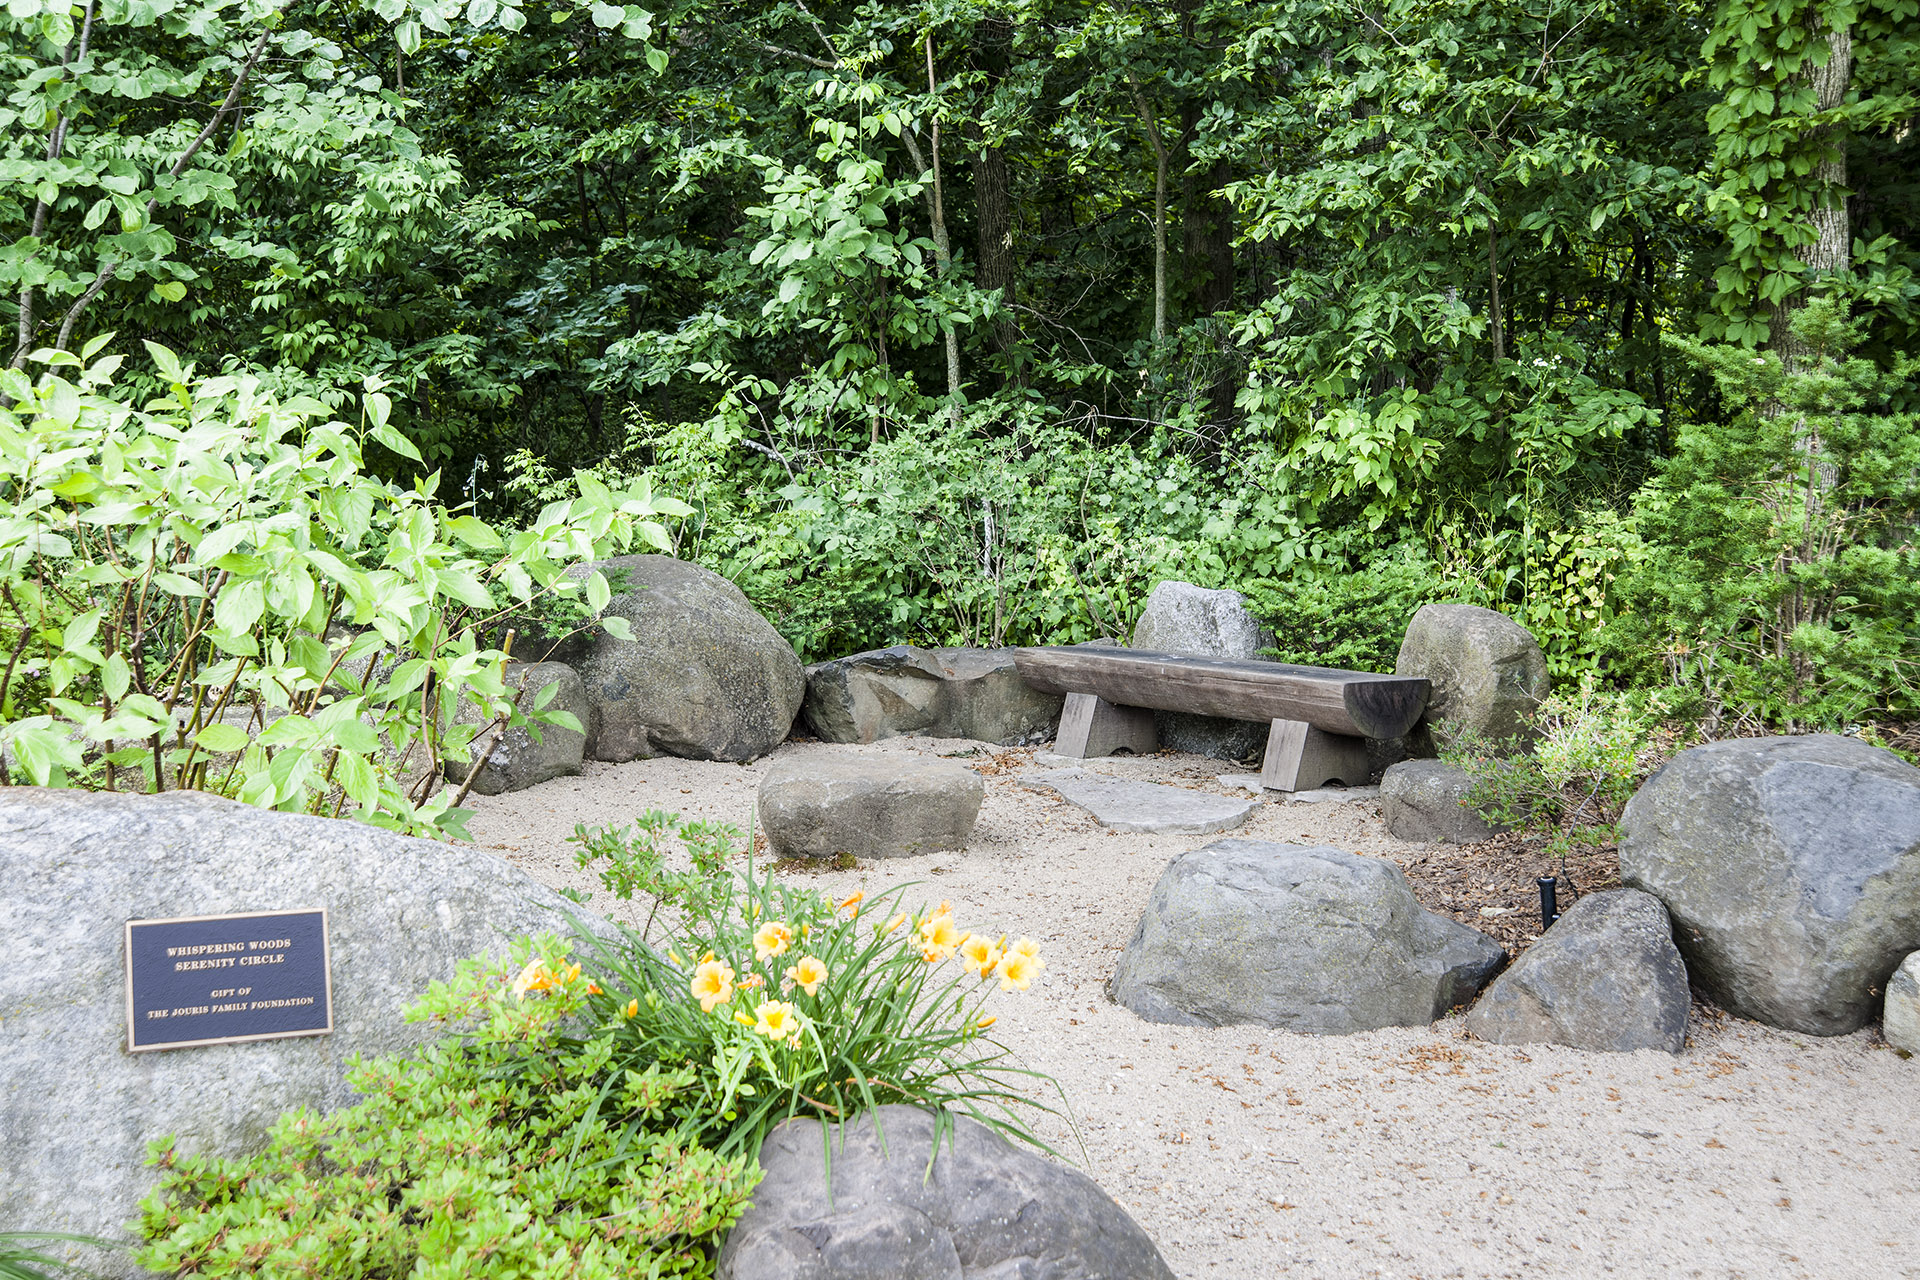 whispering woods serenity circle photo by bill f eger - Japanese Garden Stone Bridge